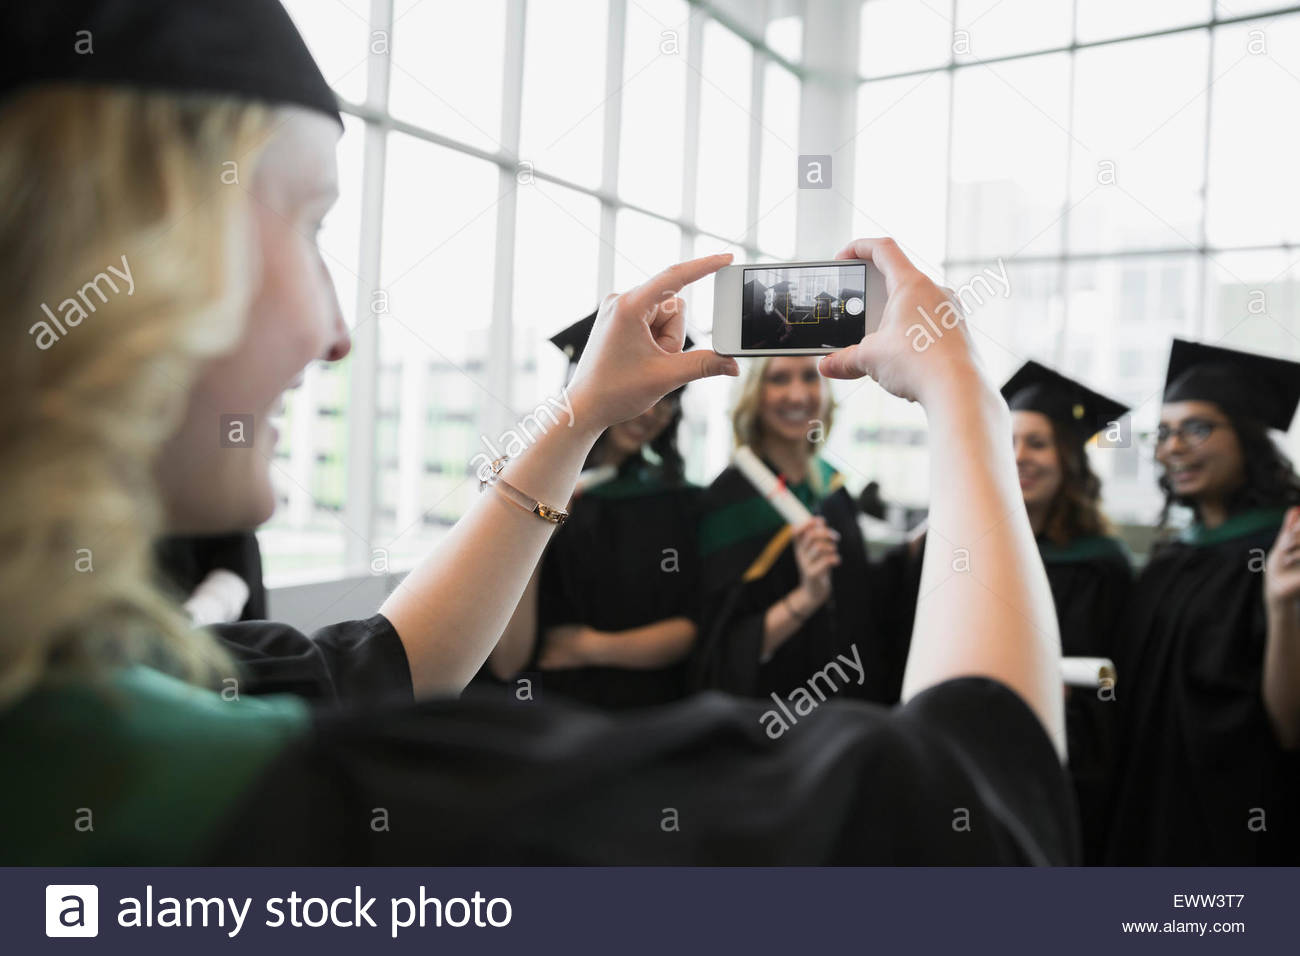 College graduates in cap and gown posing photograph - Stock Image